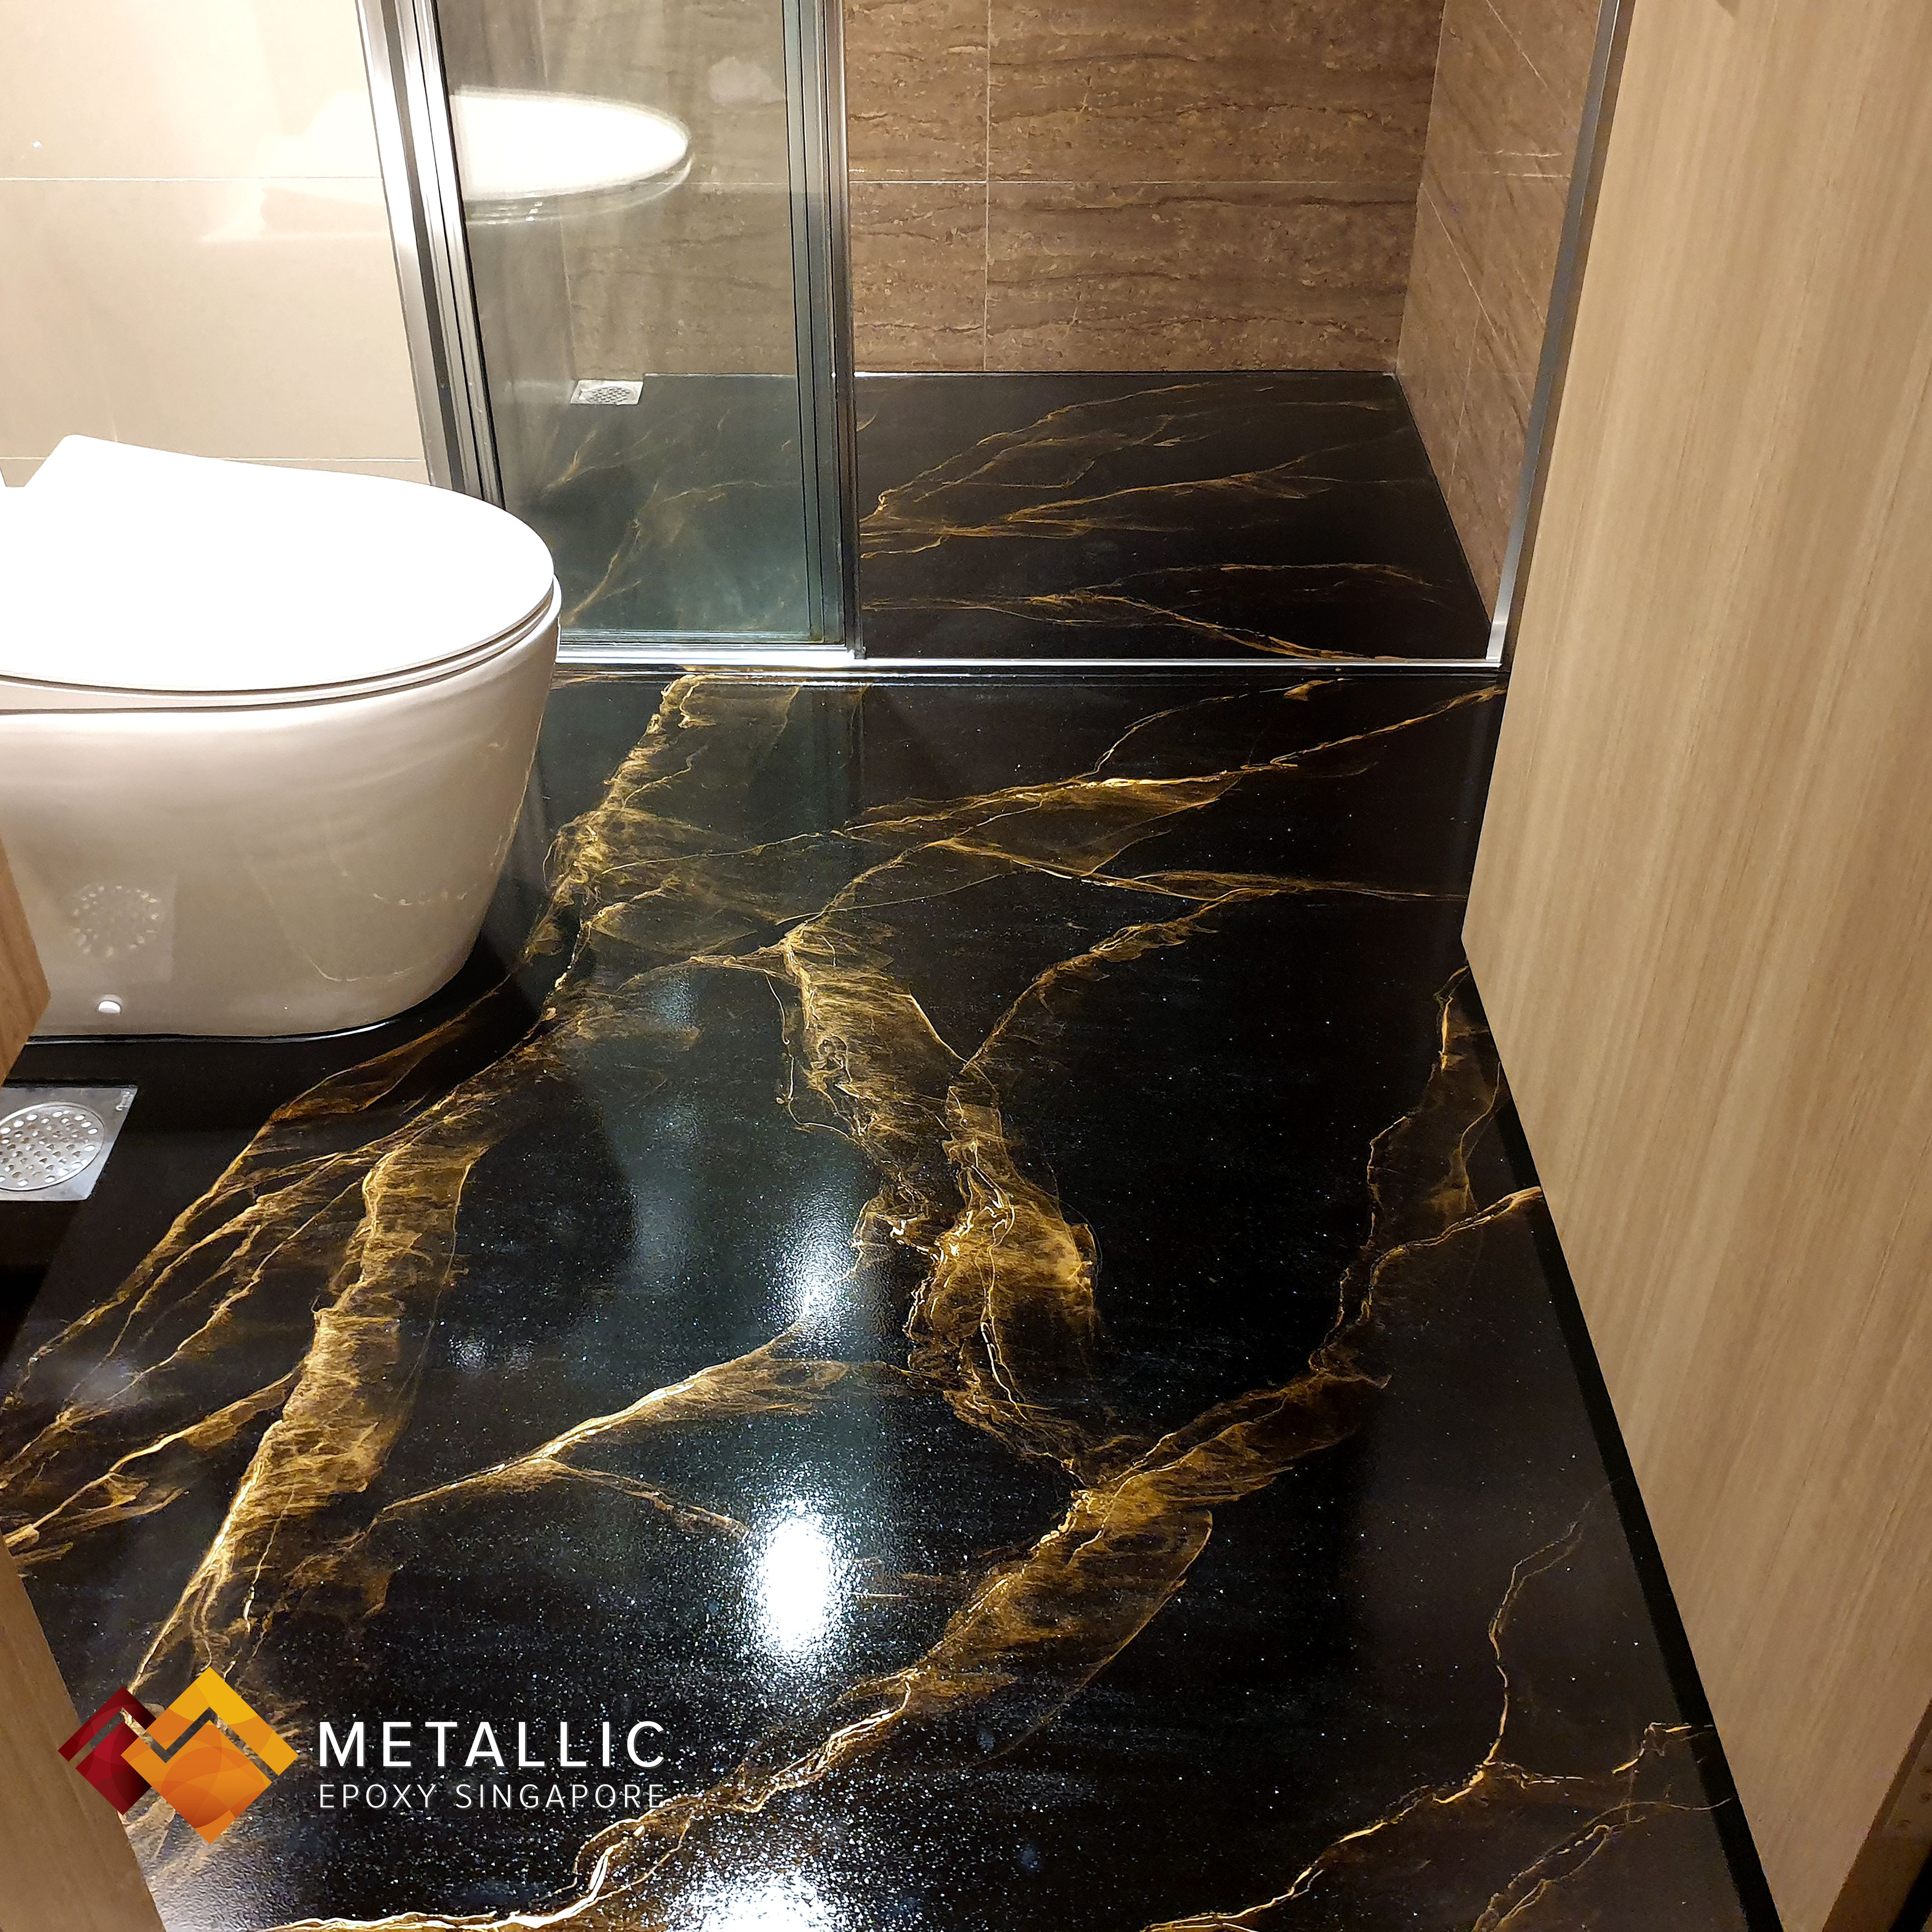 Creating An Up Class Luxurious Look And Feel For This Master Bedroom En Suite With Gorgeous Gold Streaks On A Pure Blac Metallic Epoxy Floor Epoxy Floor Epoxy